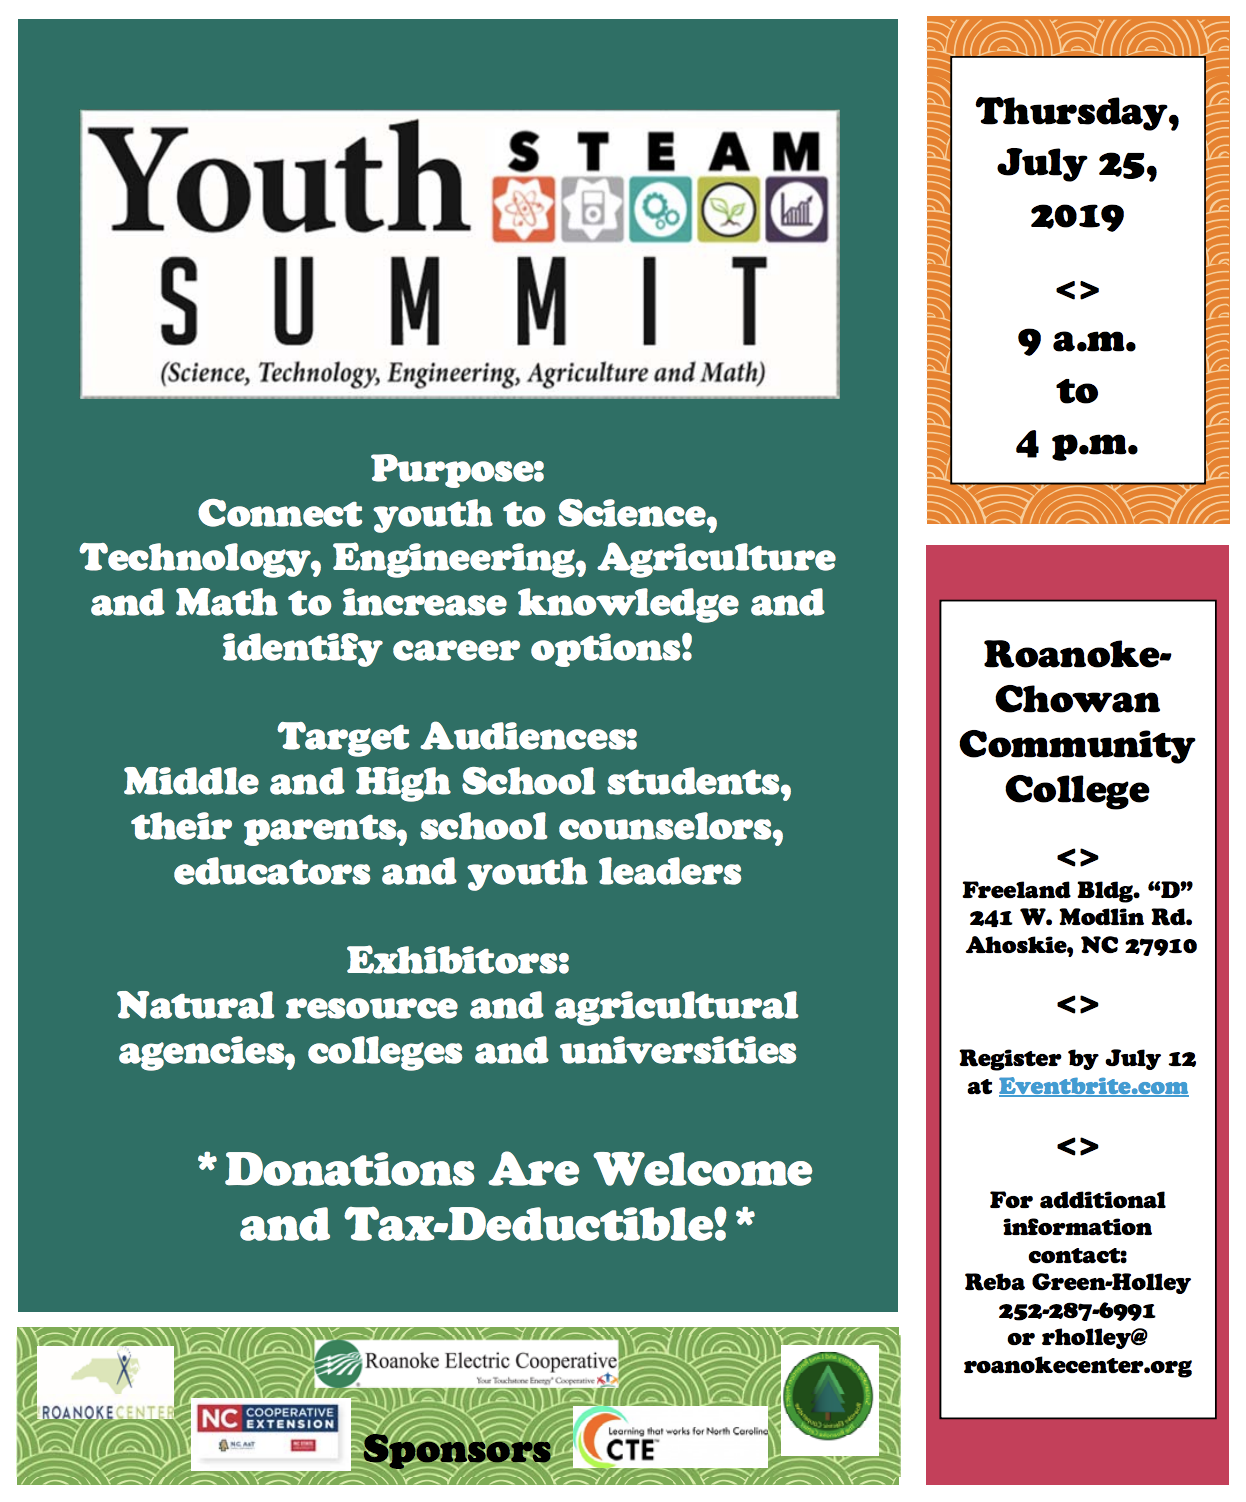 Summit flyer image